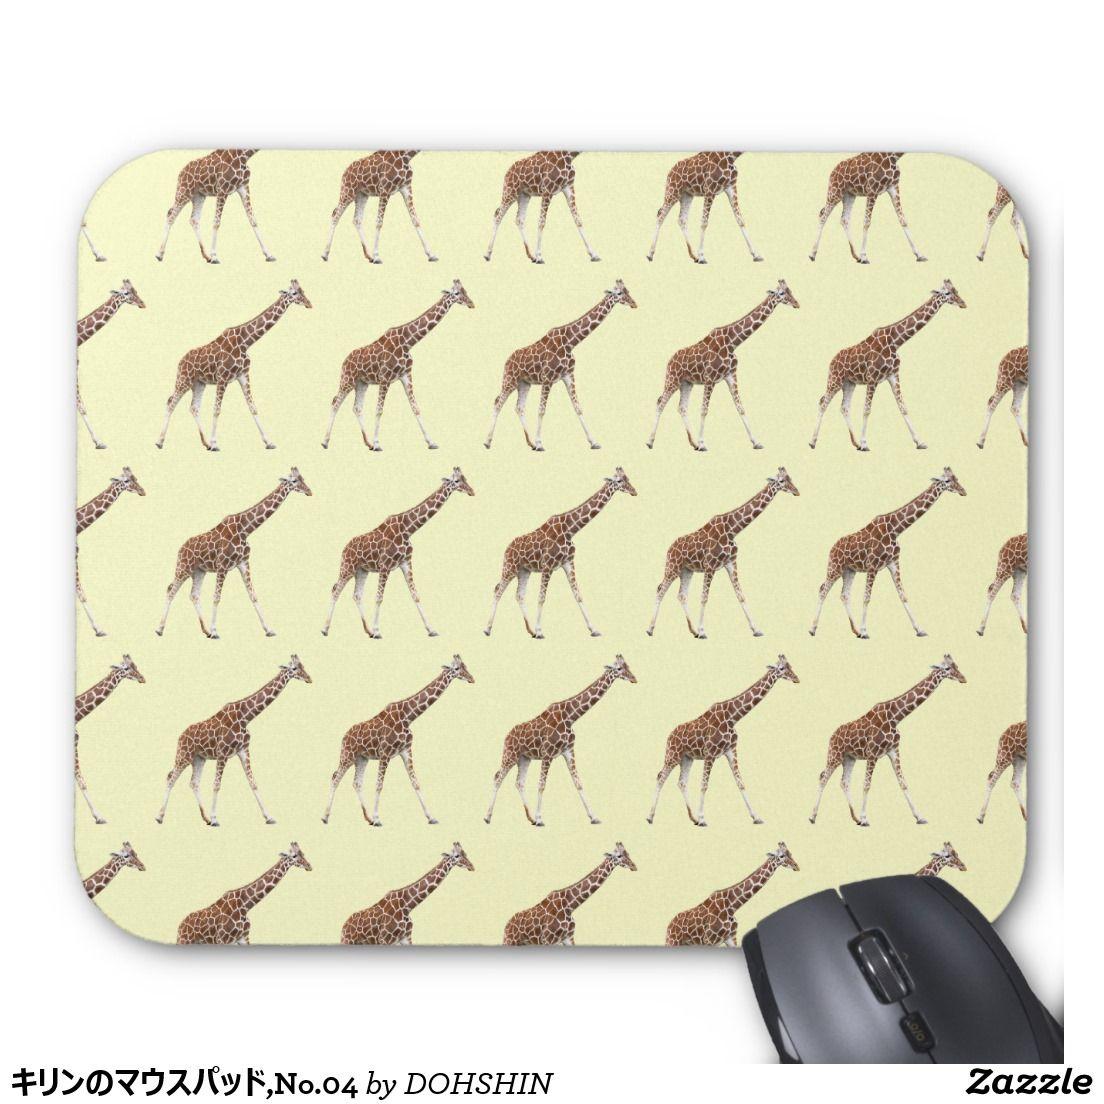 Mouse pad of giraffe, No.04